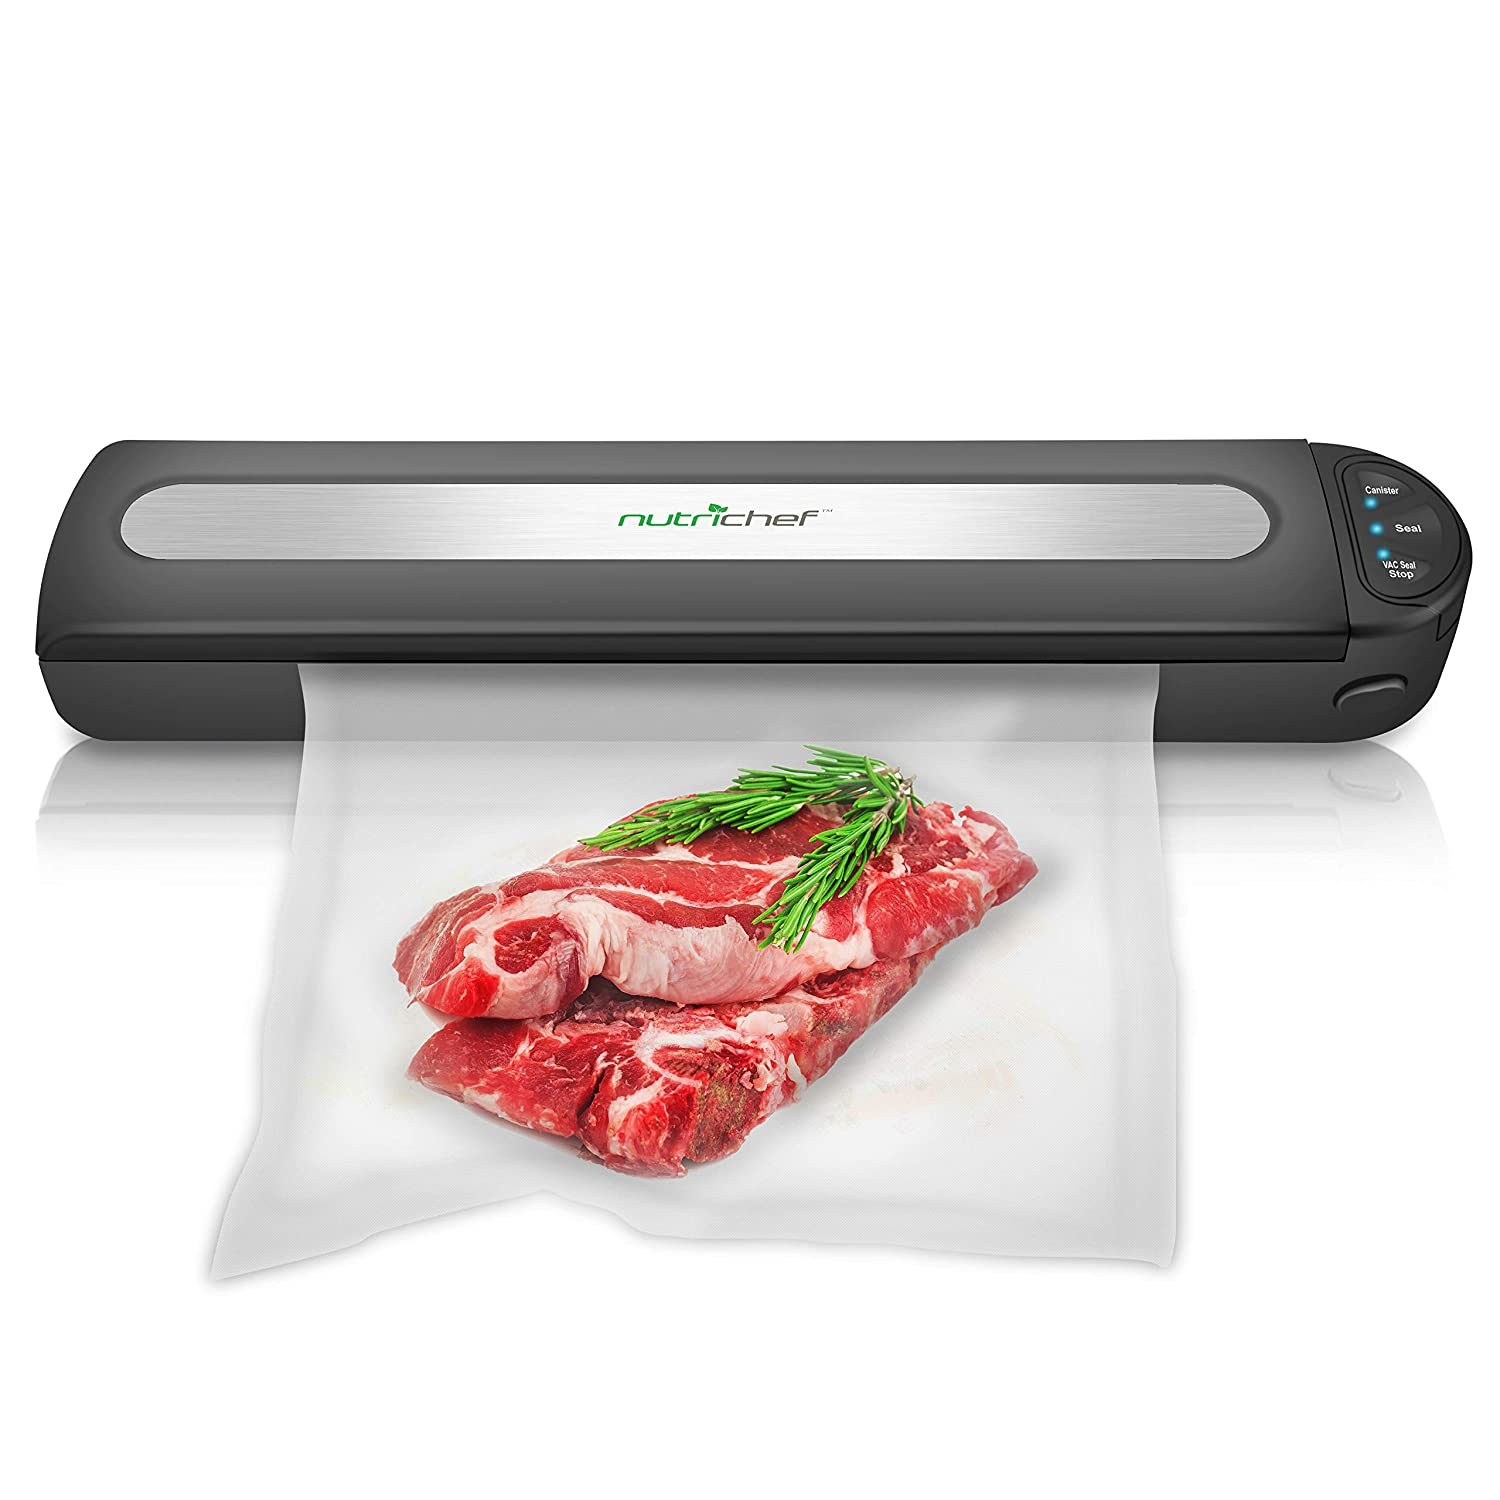 Automatic Food Vacuum Sealer System - 110W Stainless Steel Air Sealed Machine For Meat Packing Sealing Preservation Sous Vide w/ Saver Vac Seal Bags Roll, Vacuum Air Hose - NutriChef PKVS15BK (Black)